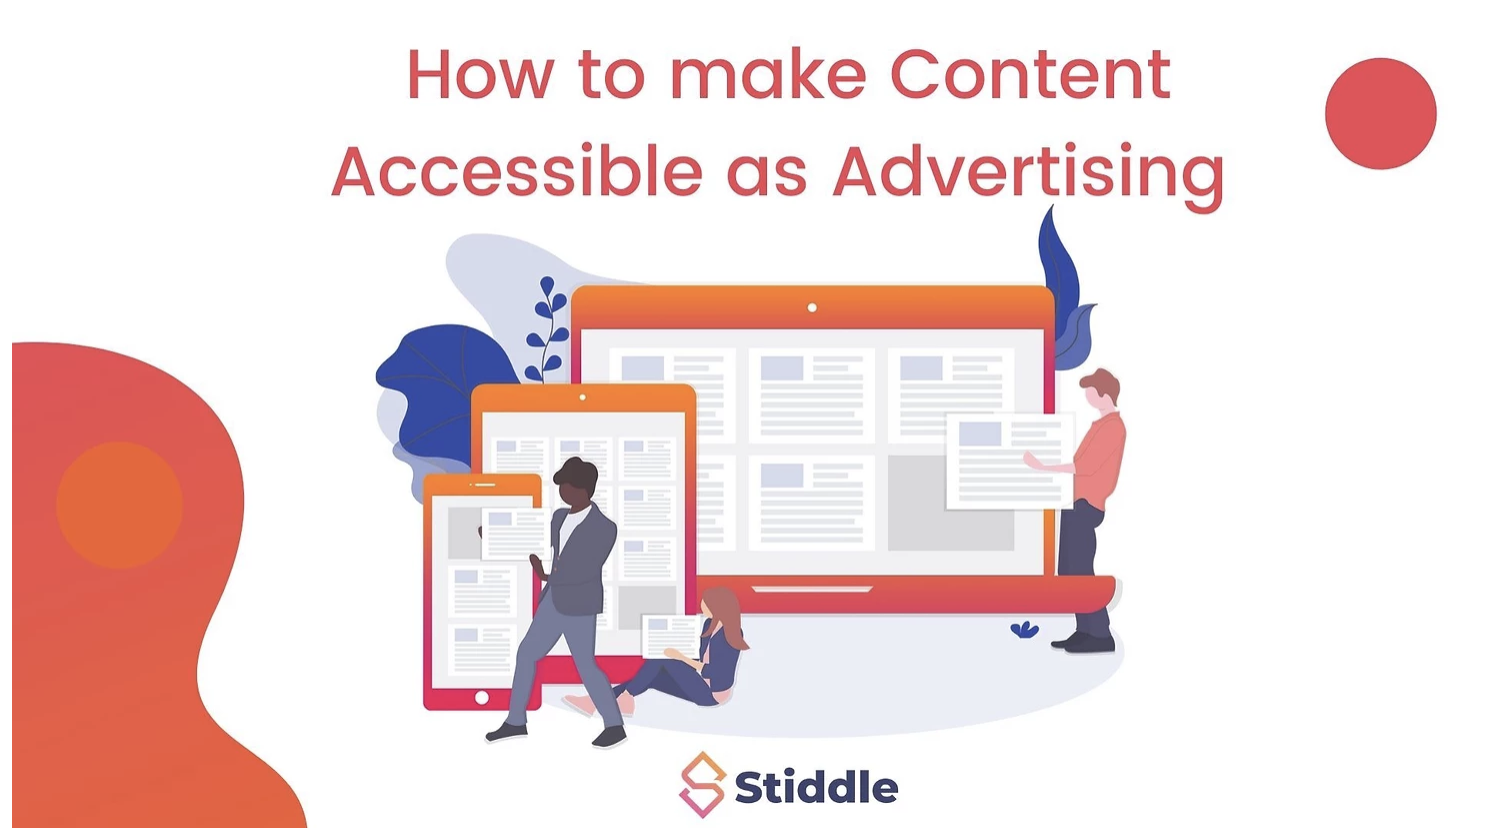 Content Accessible as Advertising